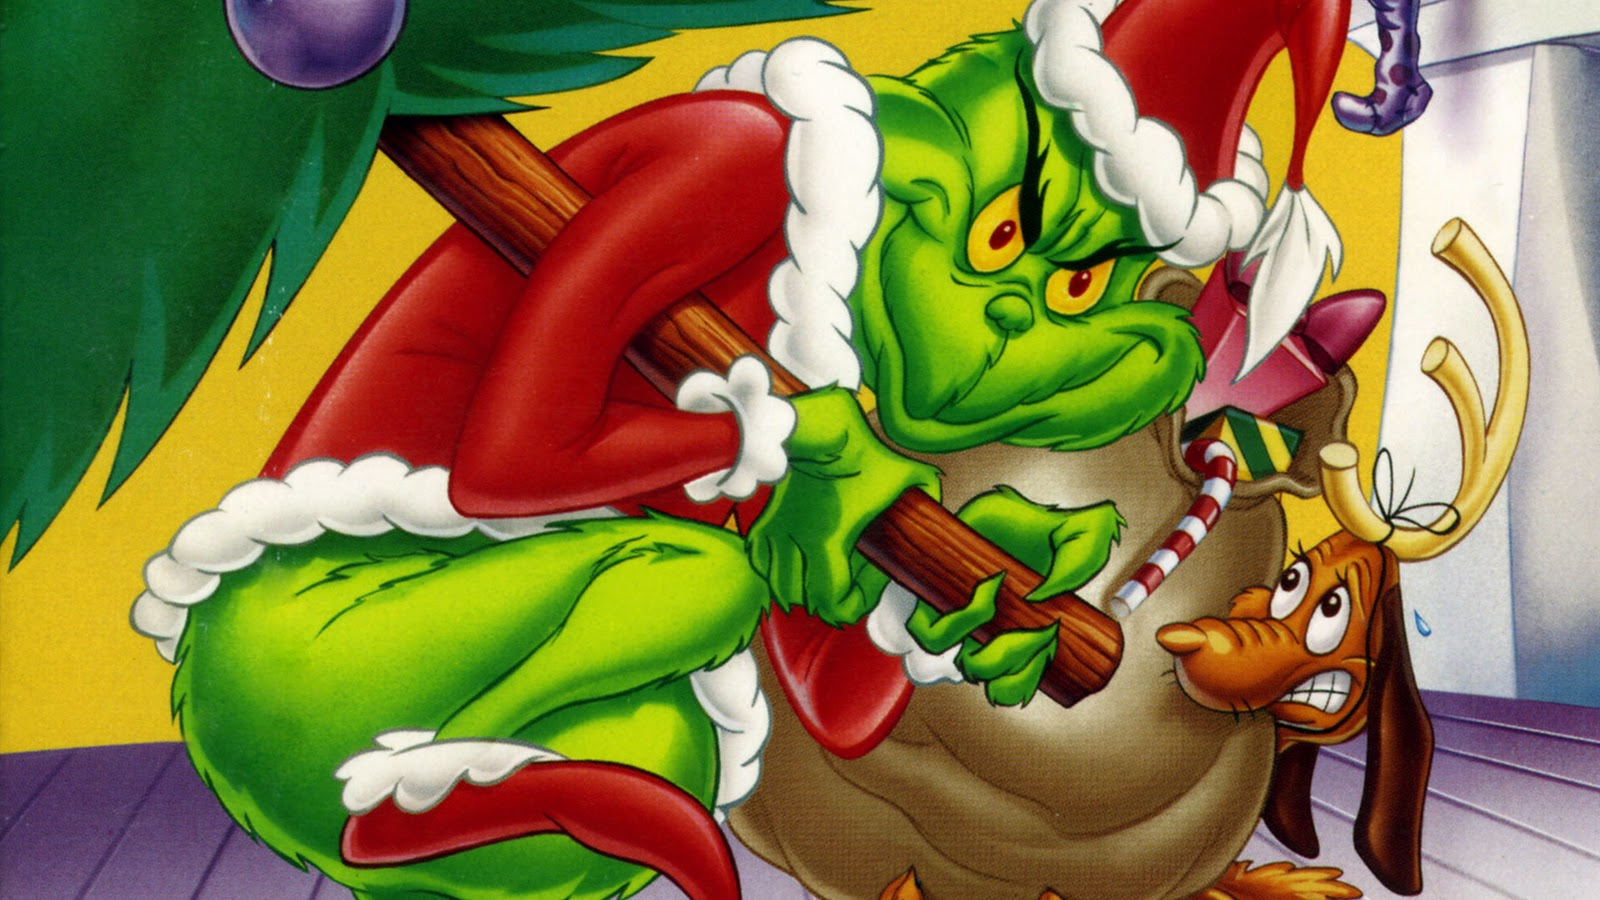 Neuroscience Explains Why the Grinch Stole Christmas | Psychology Today